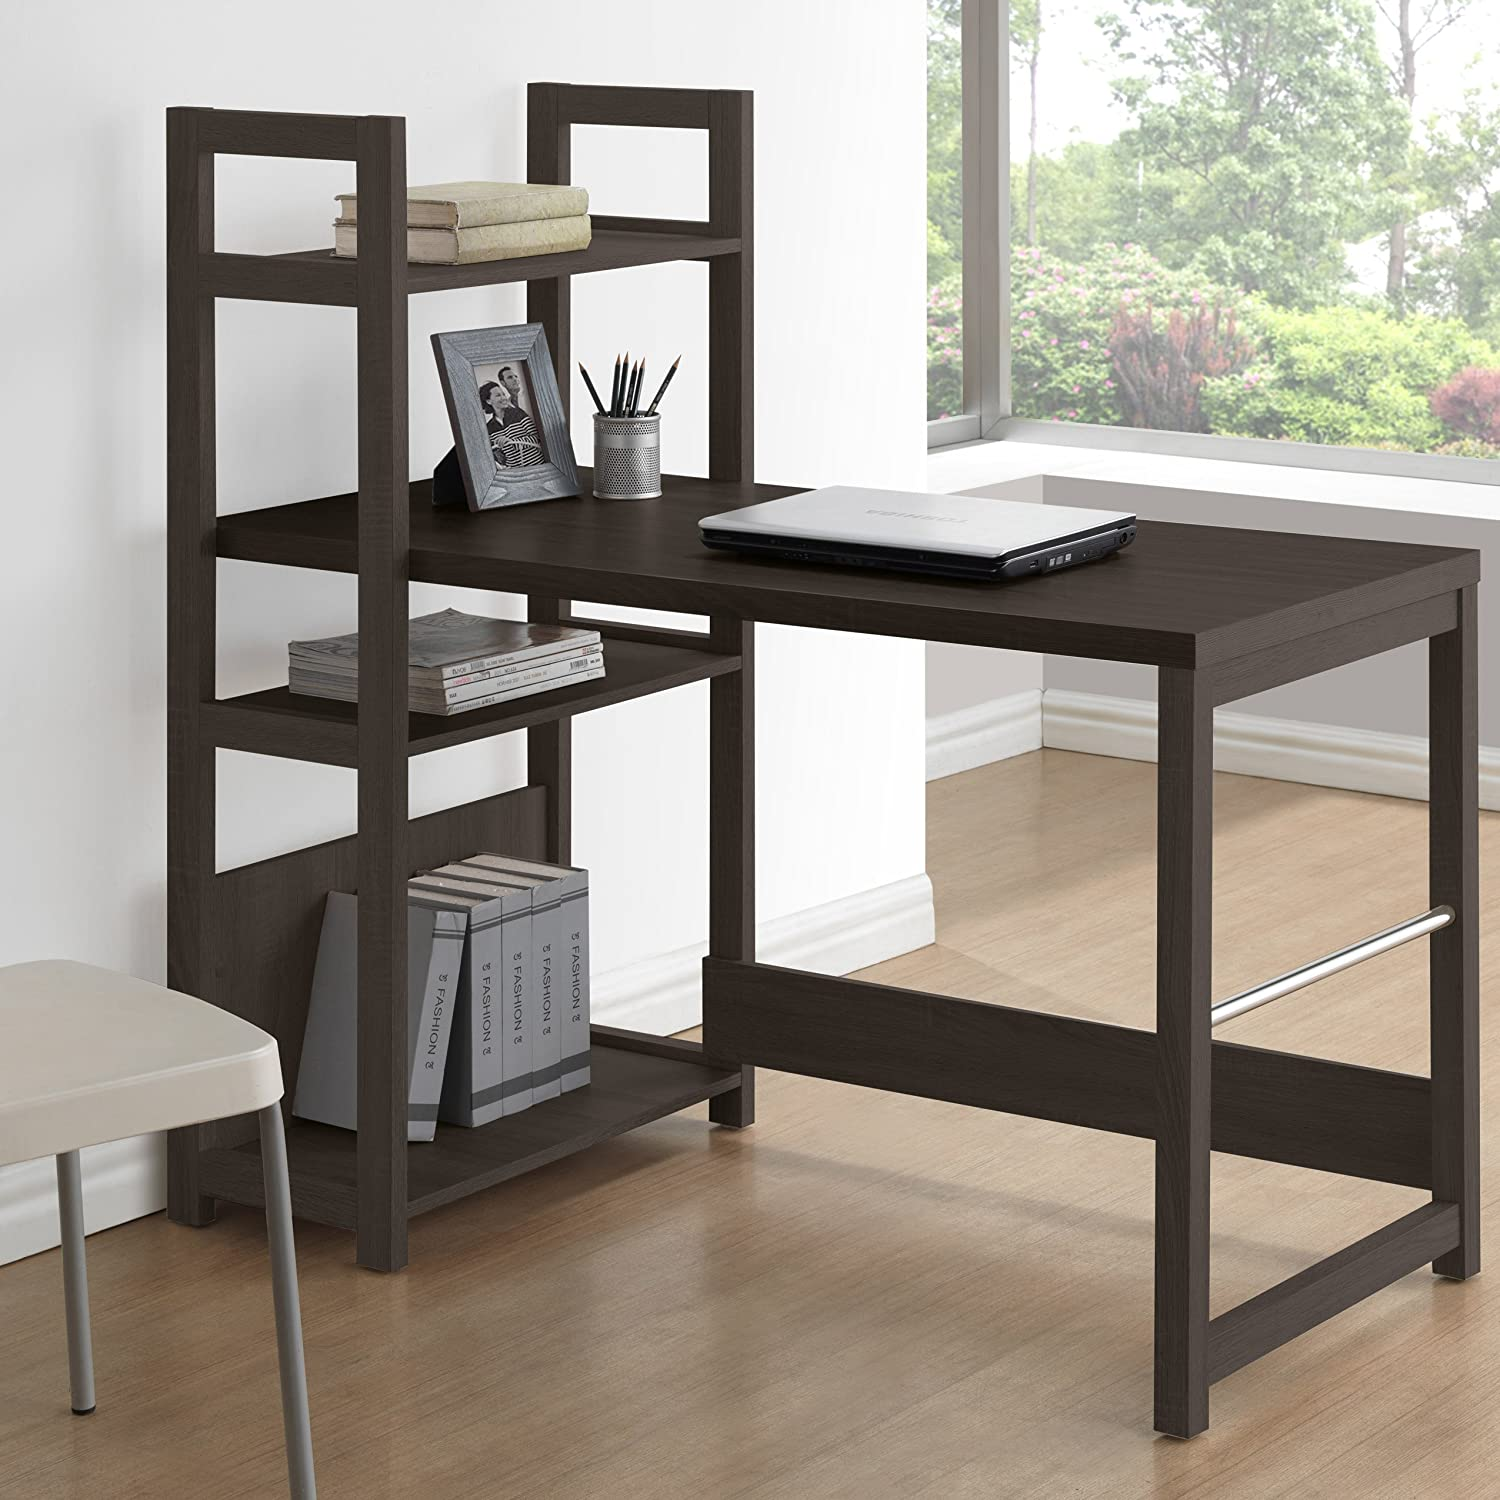 office desk l expedit genius computer drawers shelves wooden ikea outstanding double bookshelf most shaped